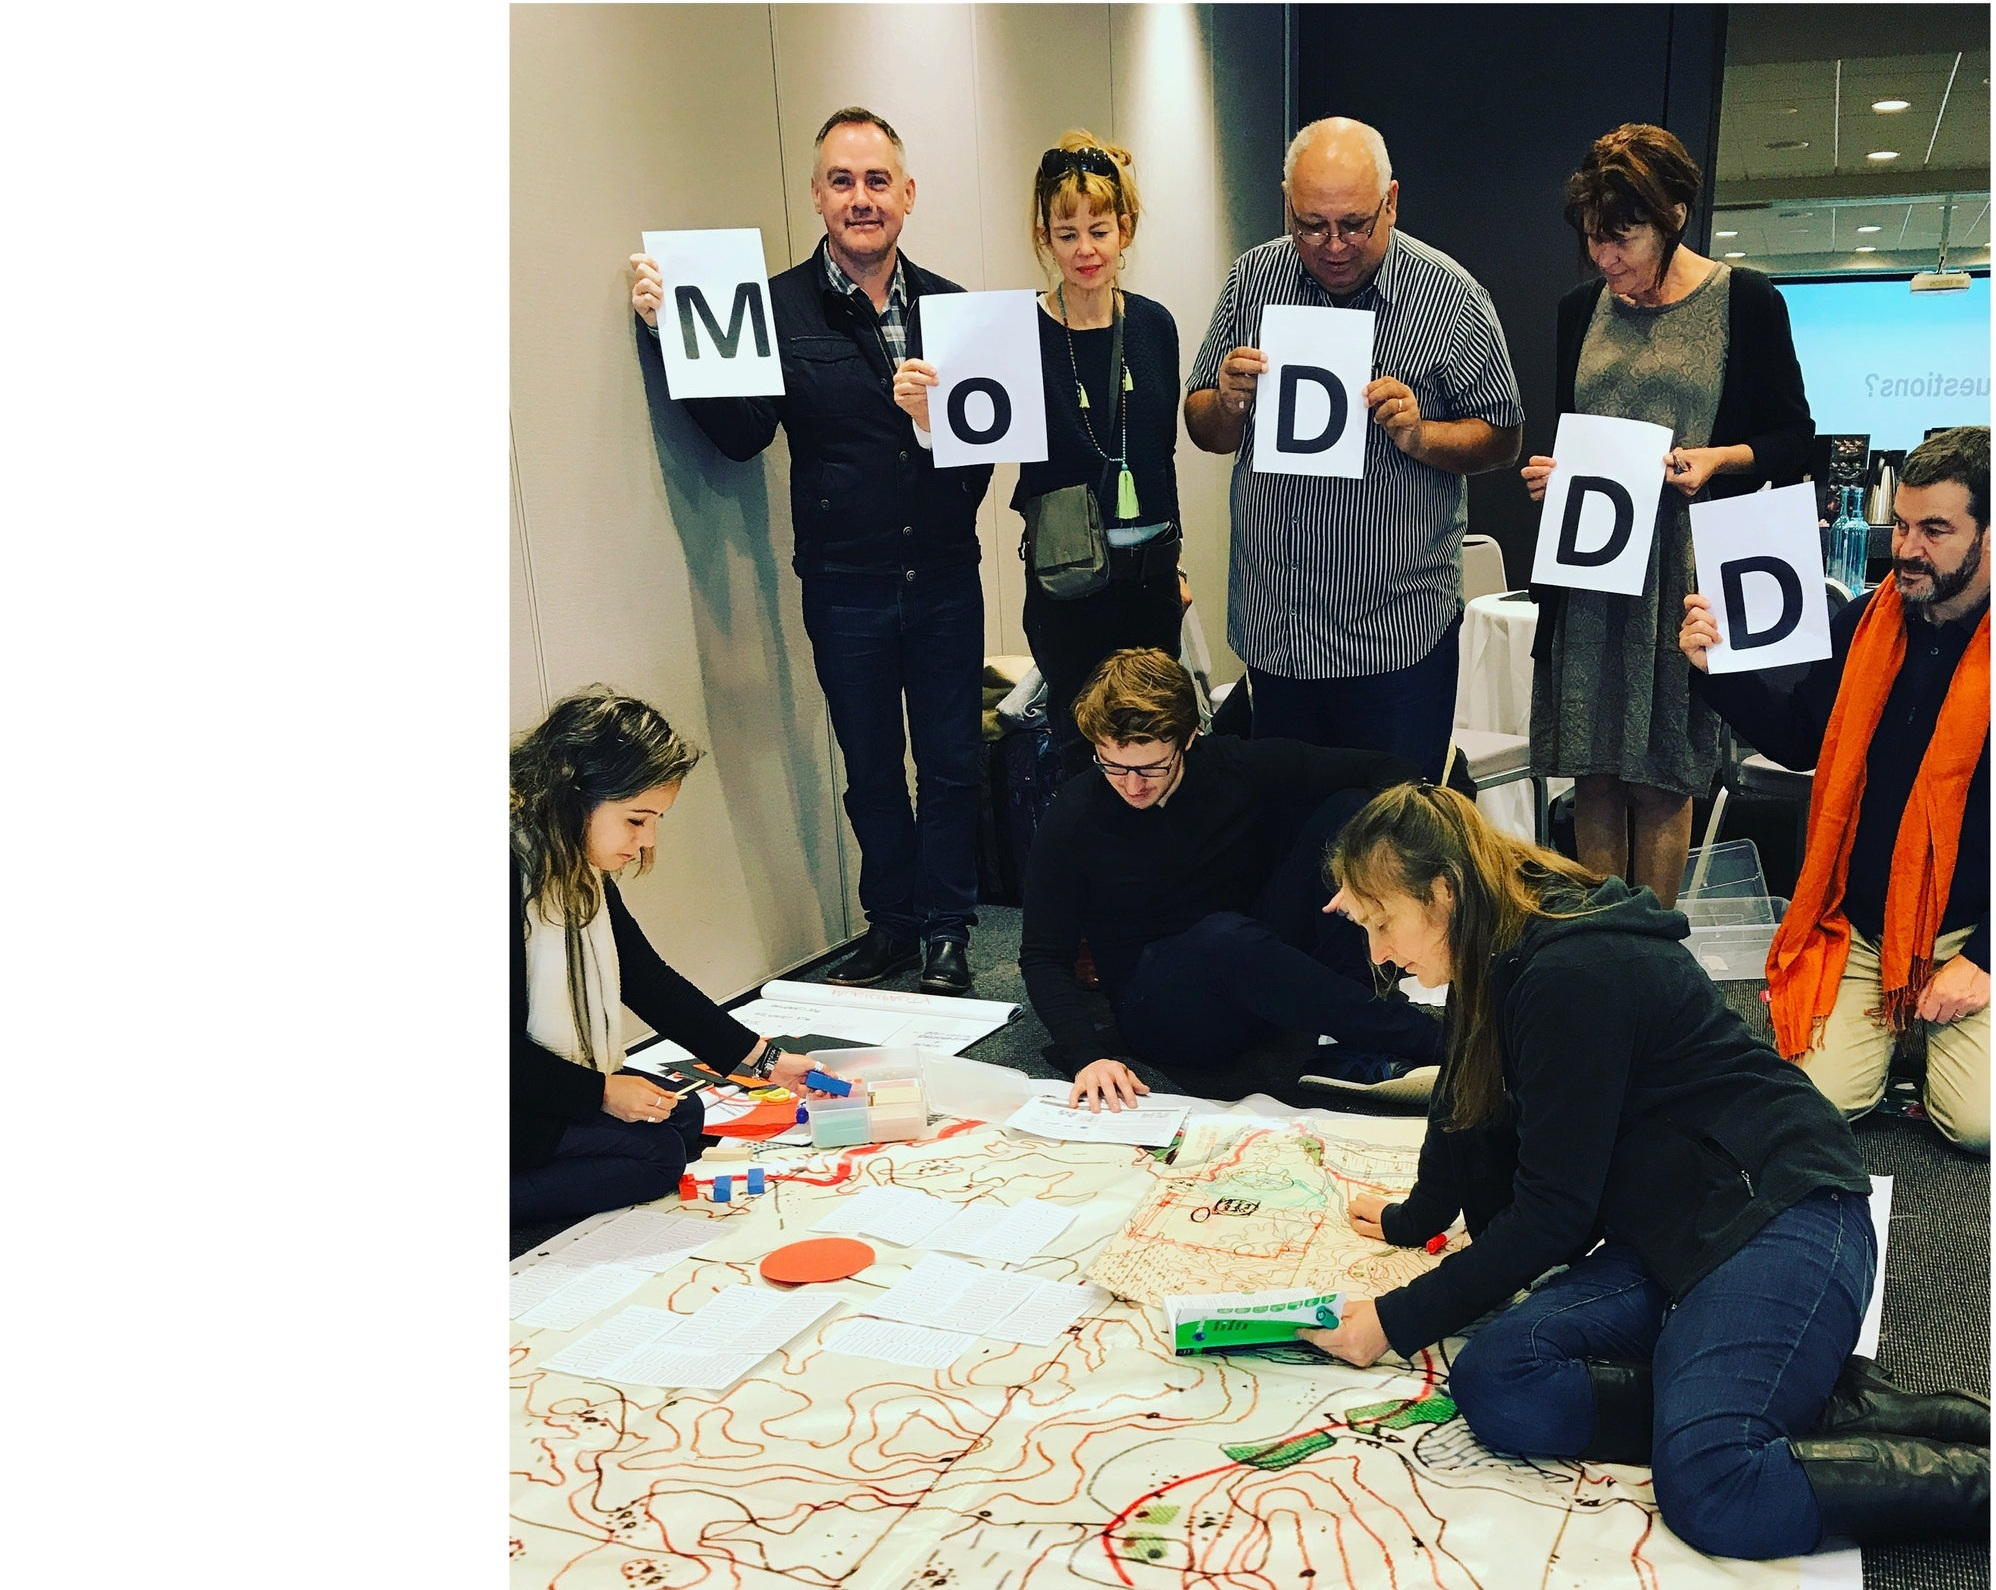 Charlesworth and faculty participating in a mapping workshop, Master of Disaster, Design and Development (MODD) program, RMIT University. Courtesy of Esther Charlesworth.